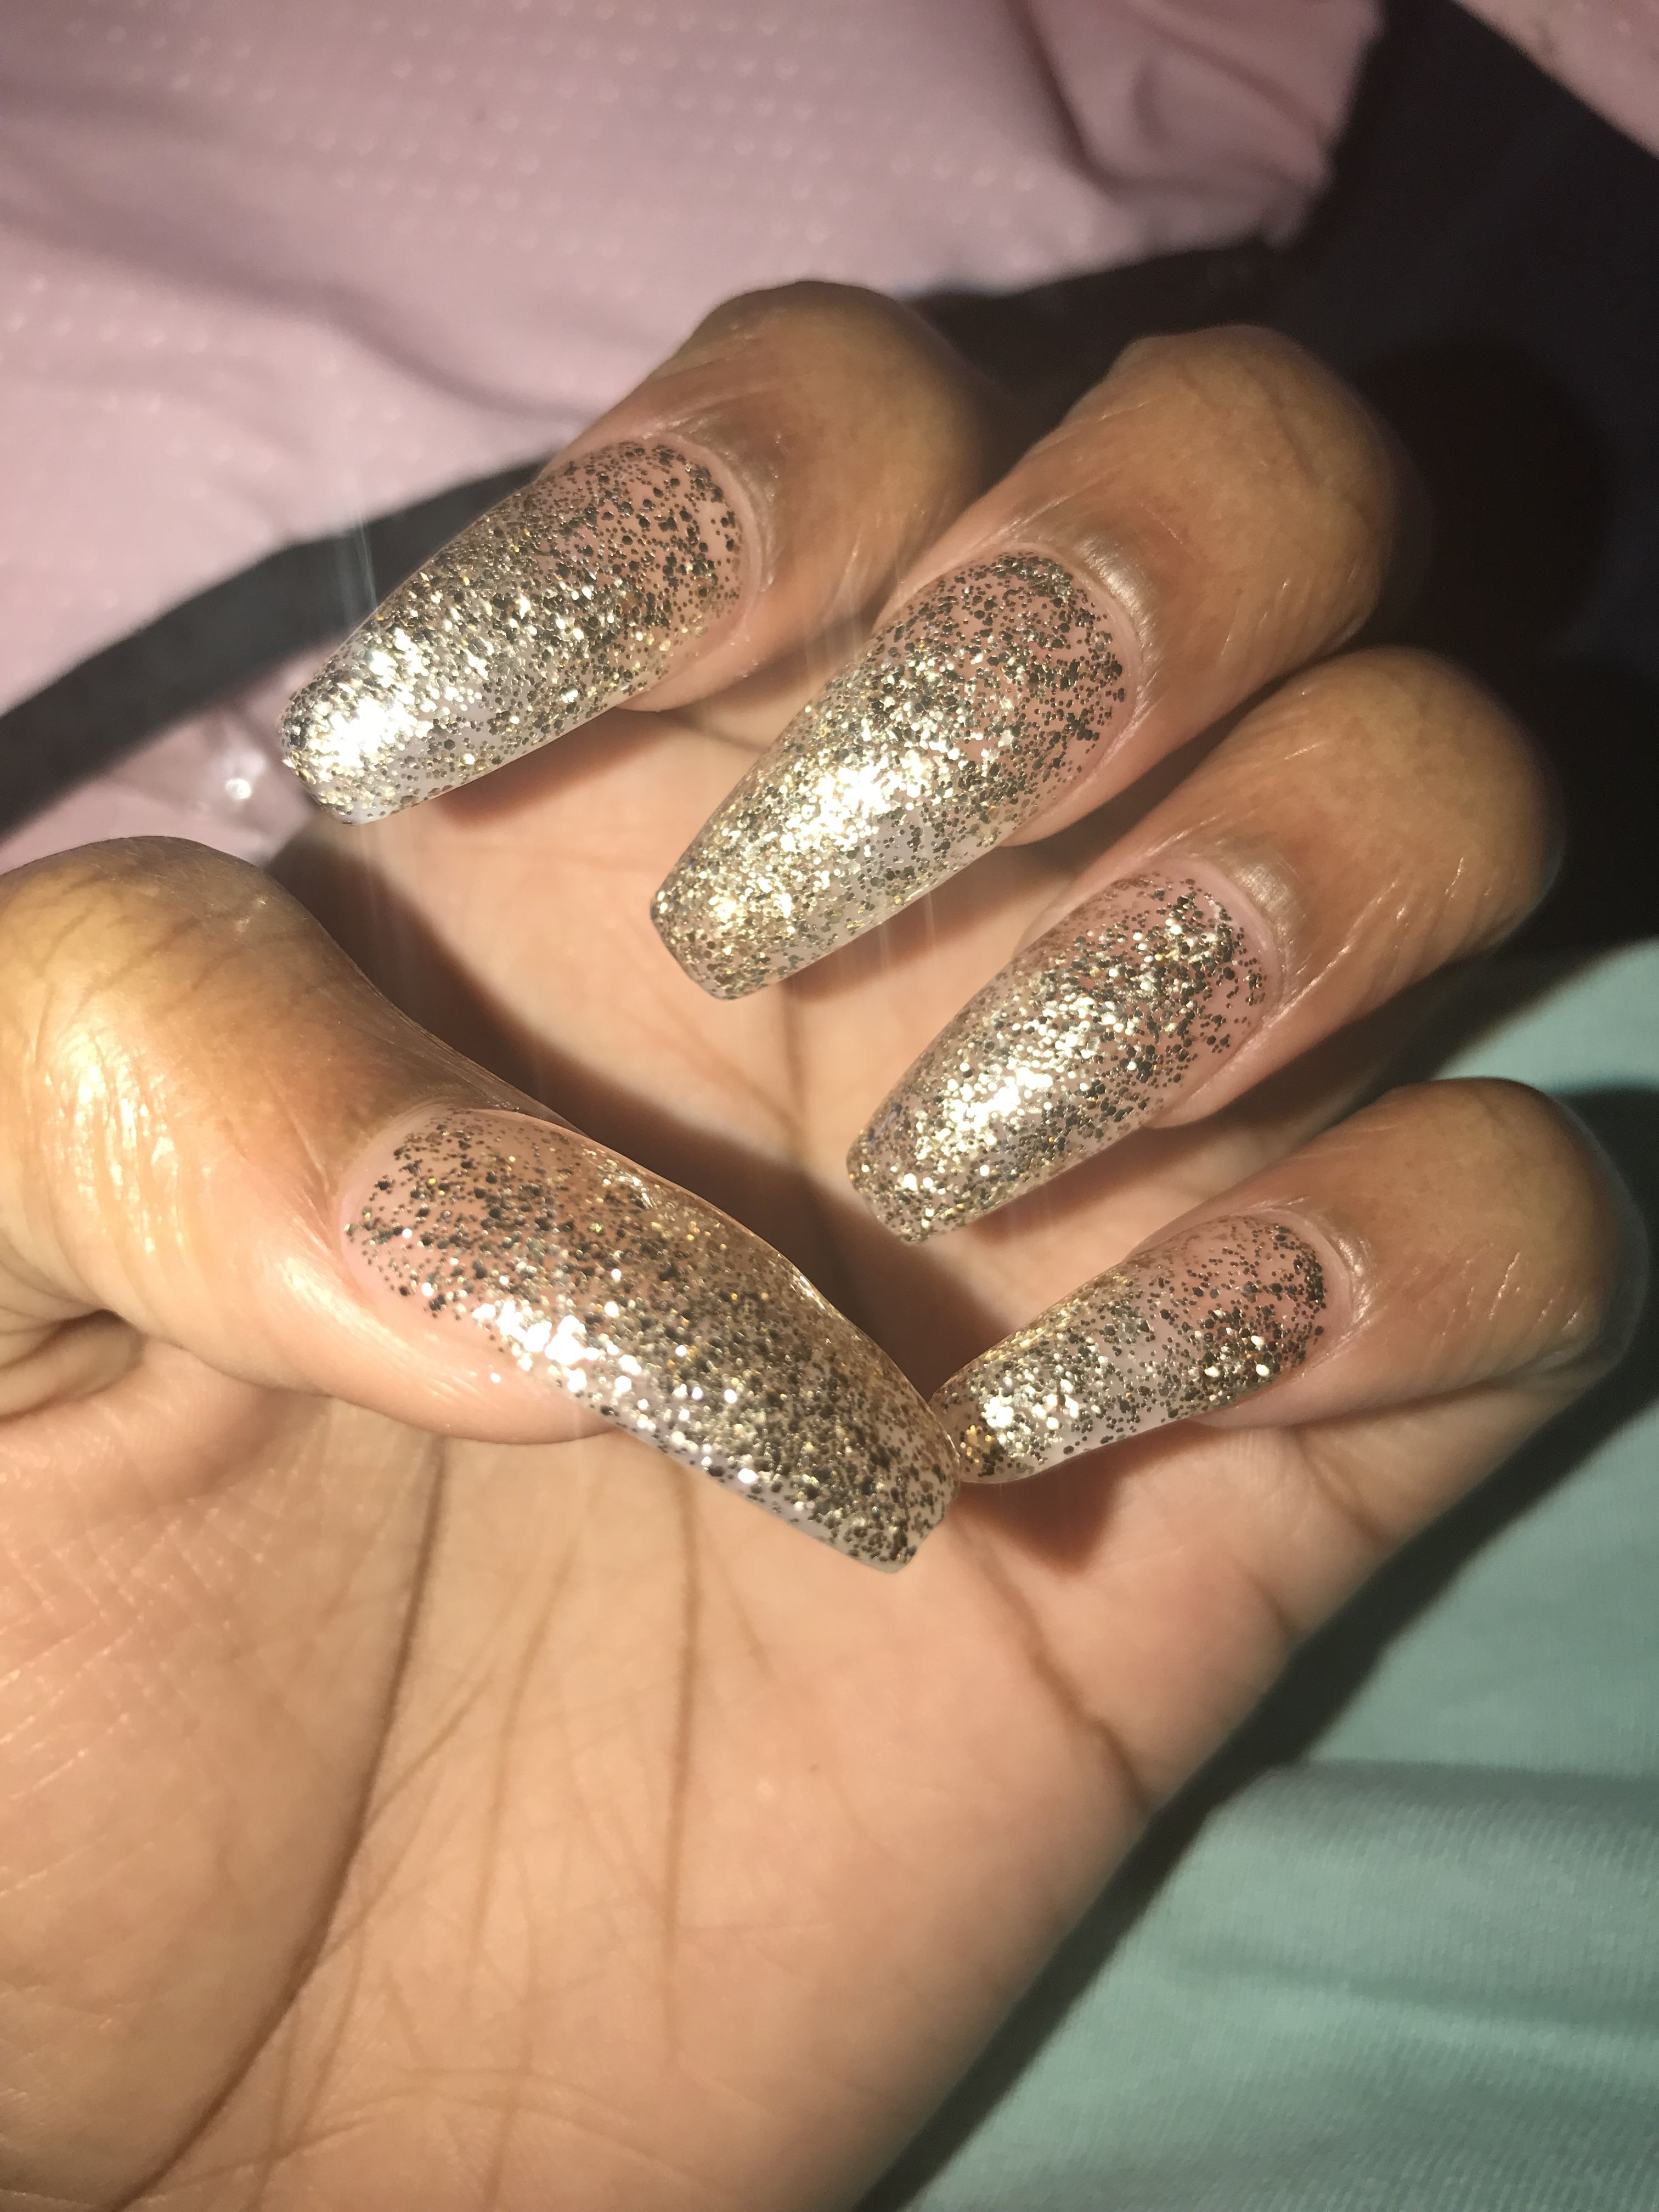 Gold Glitter Acrylic Nails Coffin Shape Coffin Shape Nails Nails Acrylic Nails